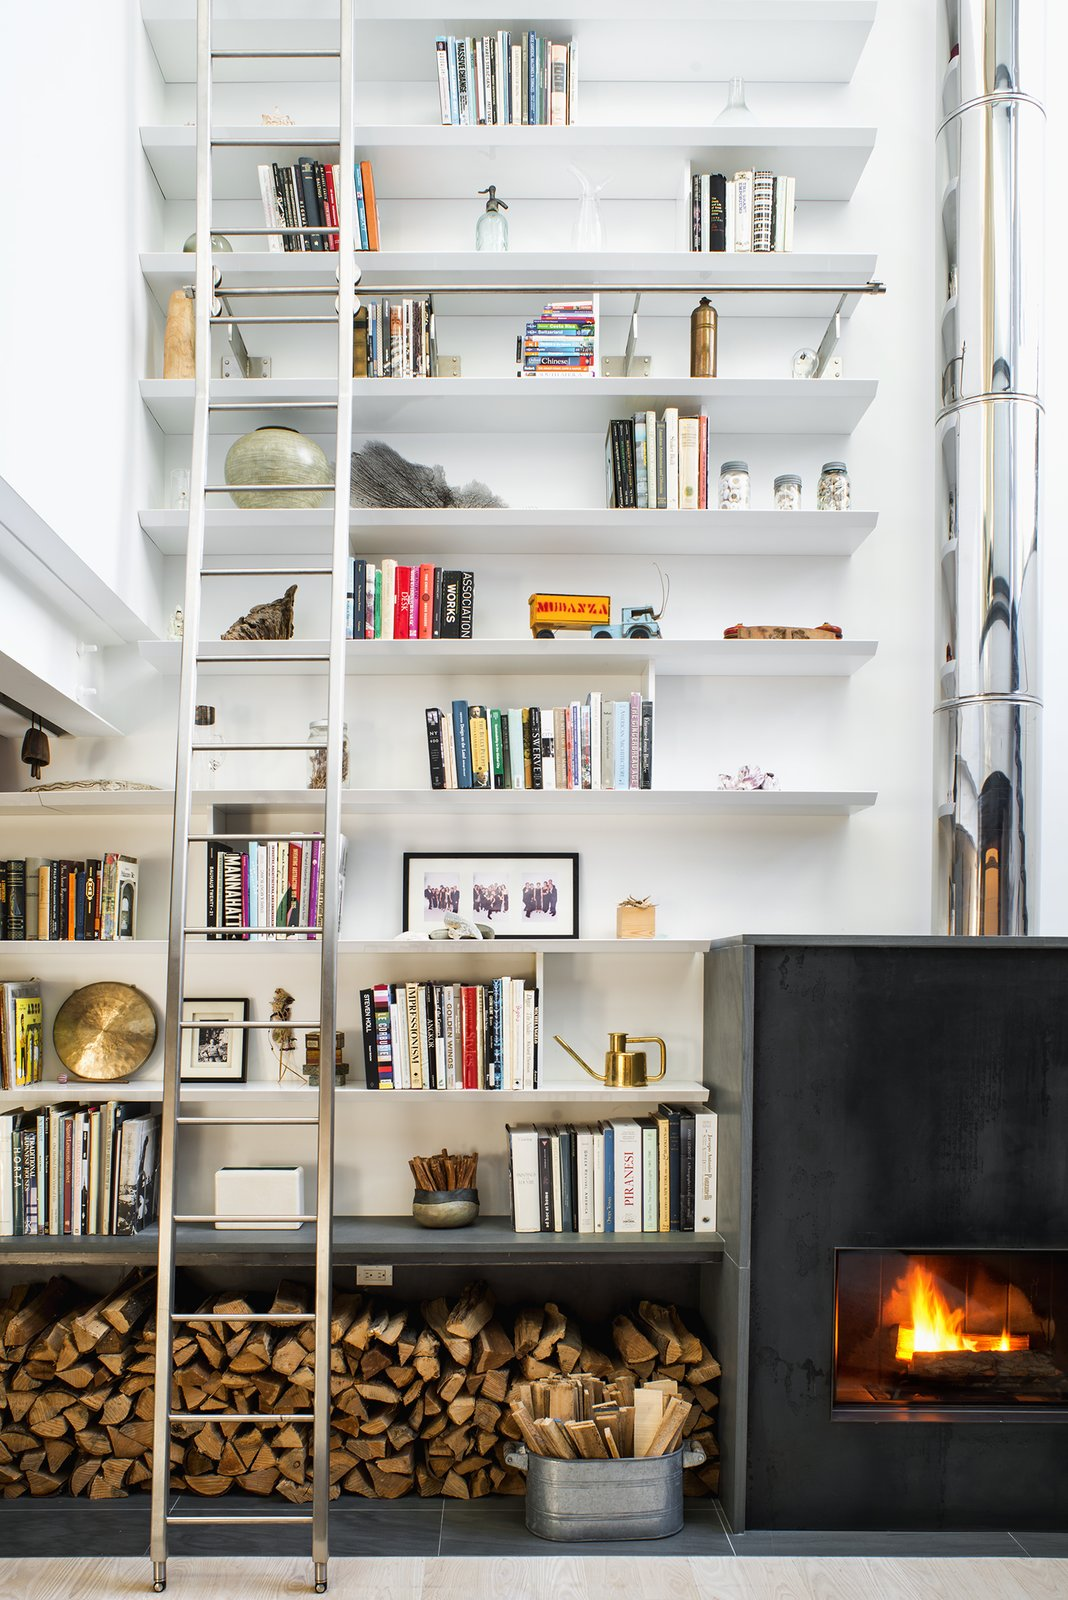 The double-height living room provided the perfect opportunity to combine the homeowners' love of art, literature, and travel, allowing them to fill the 24-foot shelves with books and collected artifacts. A wood-burning sustainable fireplace by Wittus adds a broad stroke of warmth.